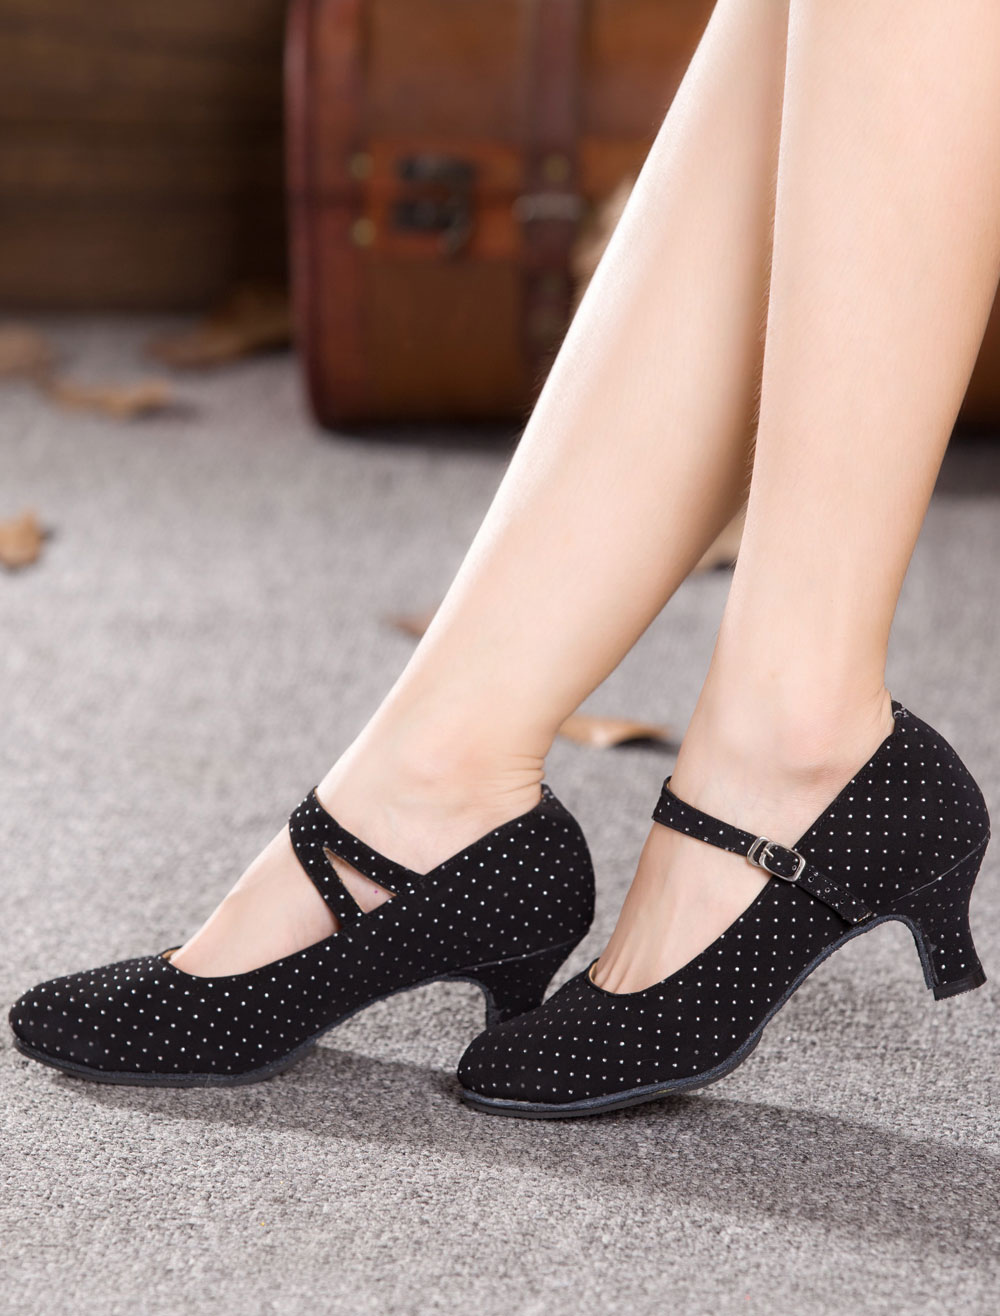 Black Dance Pumps Straps Print Suede Heels for Women